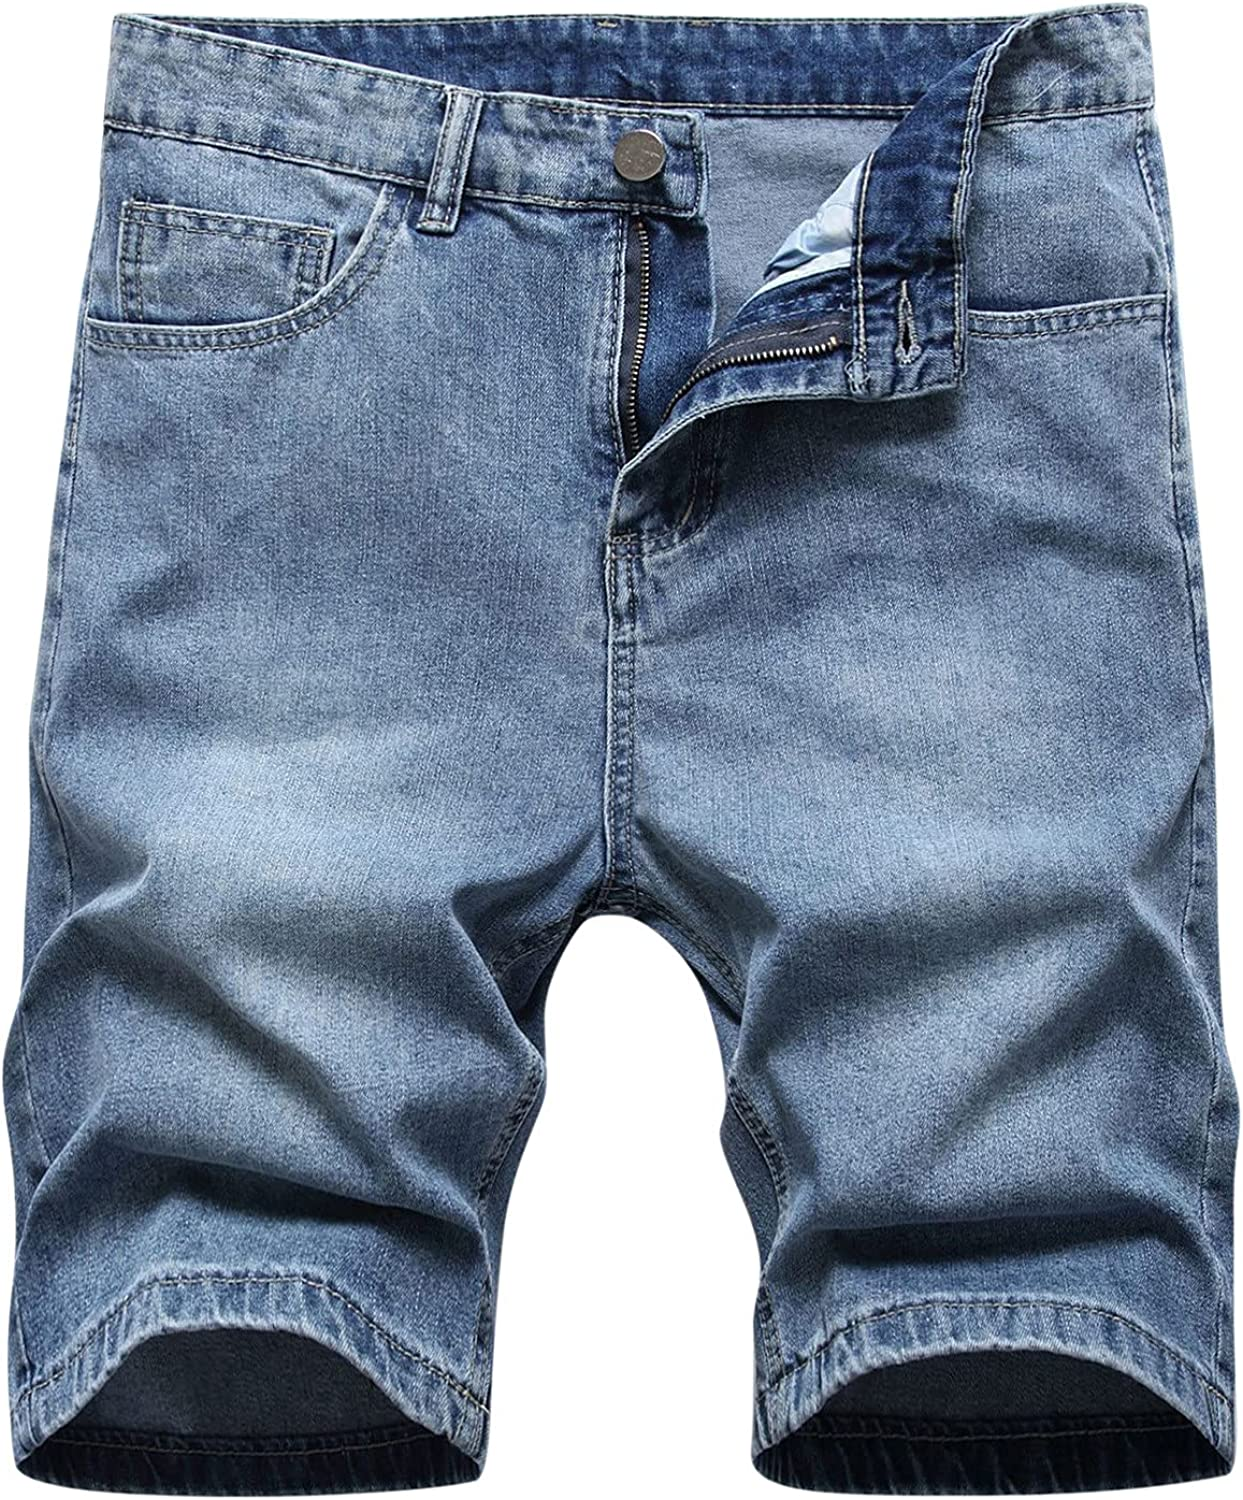 Men's Classic Relaxed Fit Short,Denim Five-Point Pants Overalls Stretch Cargo Shorts with Pocket